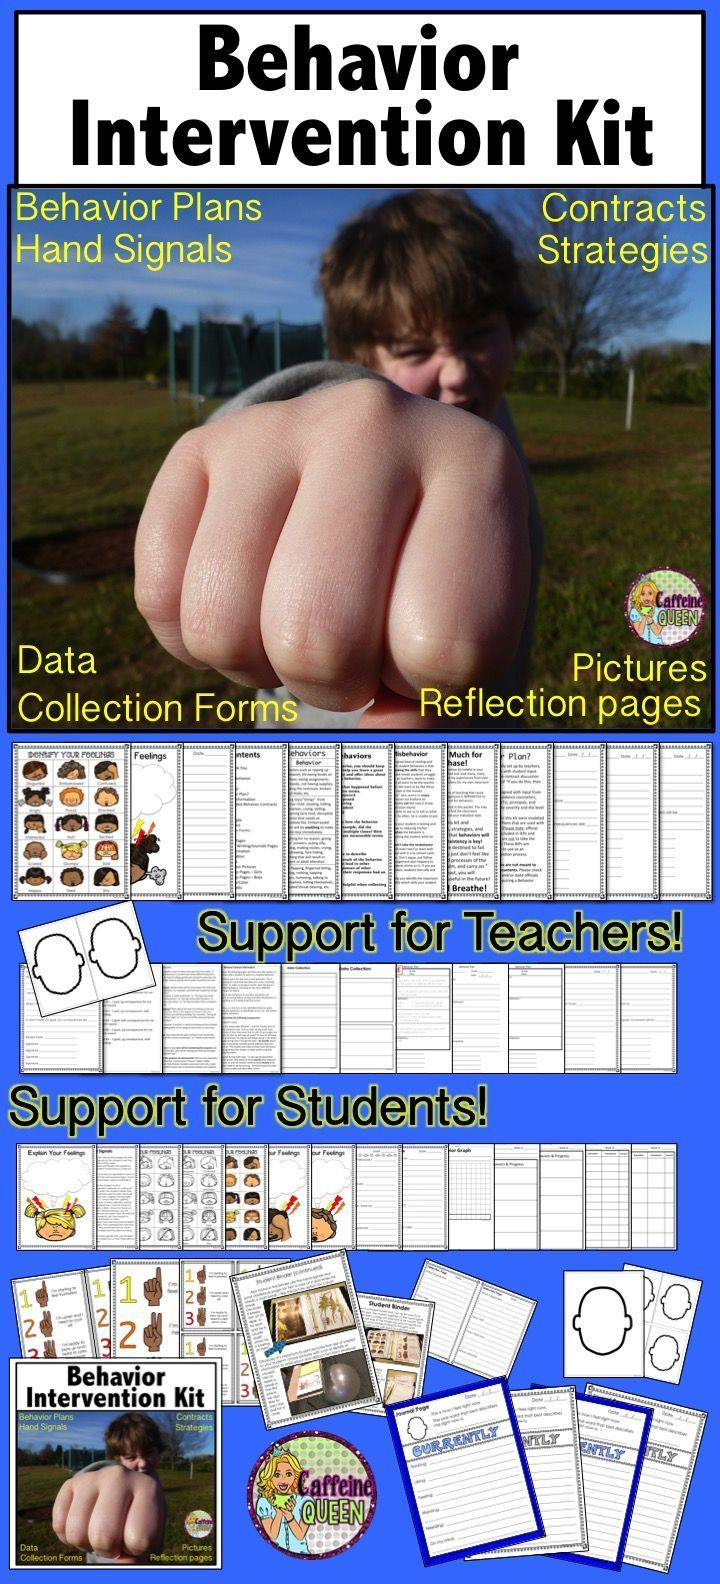 Behavior Intervention Kit to support teachers and students - full of behavior plans, contracts, information about behaviors, reflection pages, data collection and more!